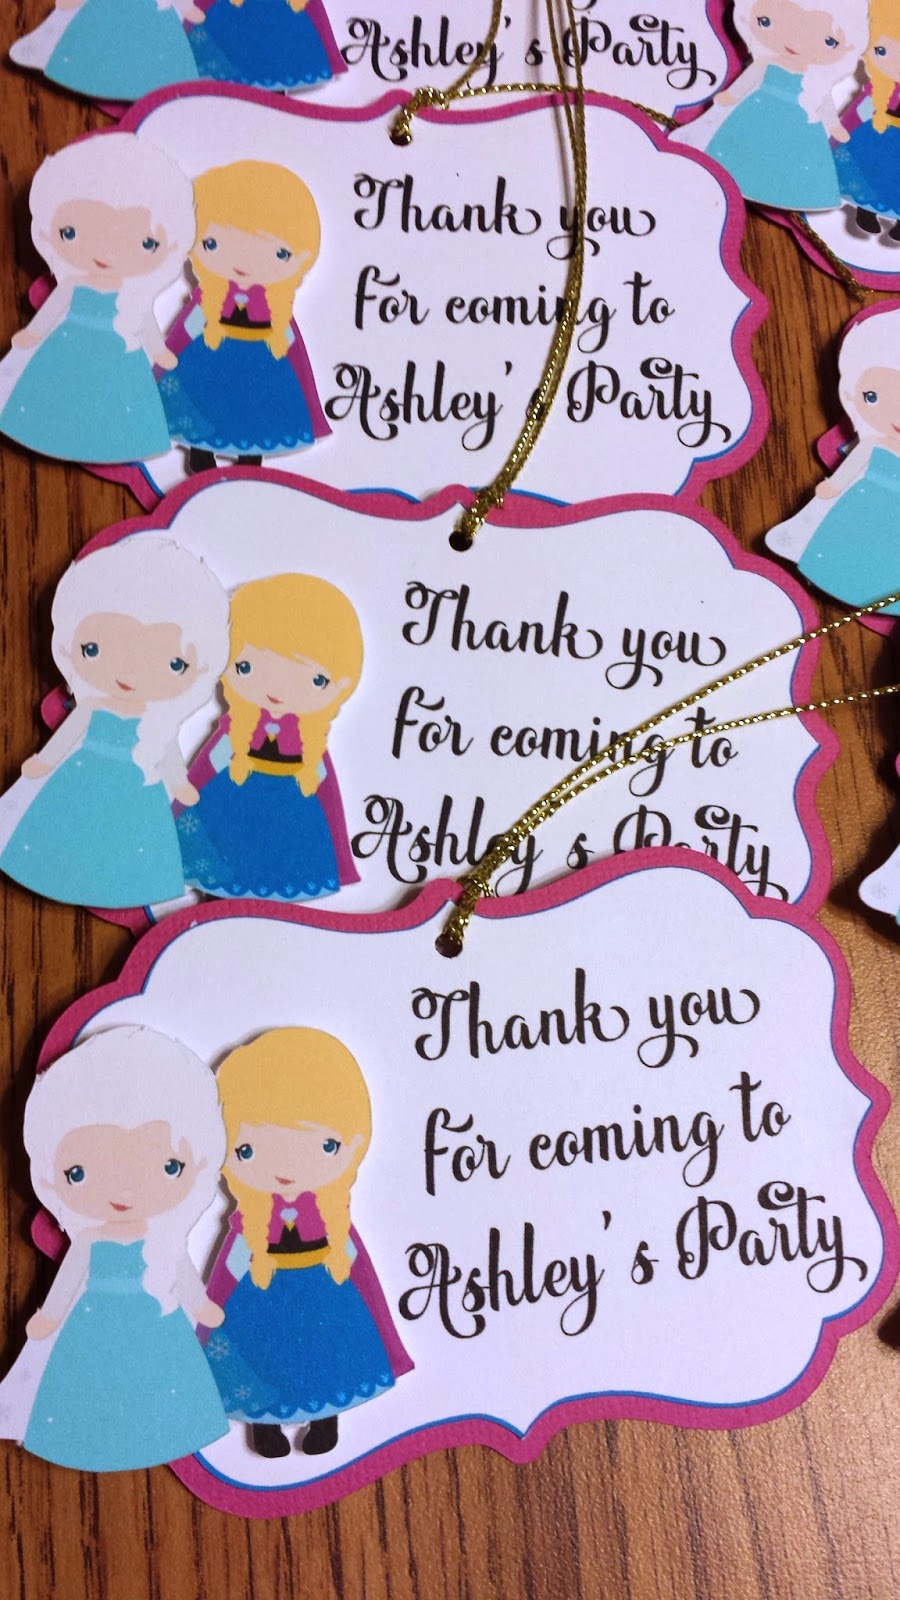 handmade invitations, gift tags, banner